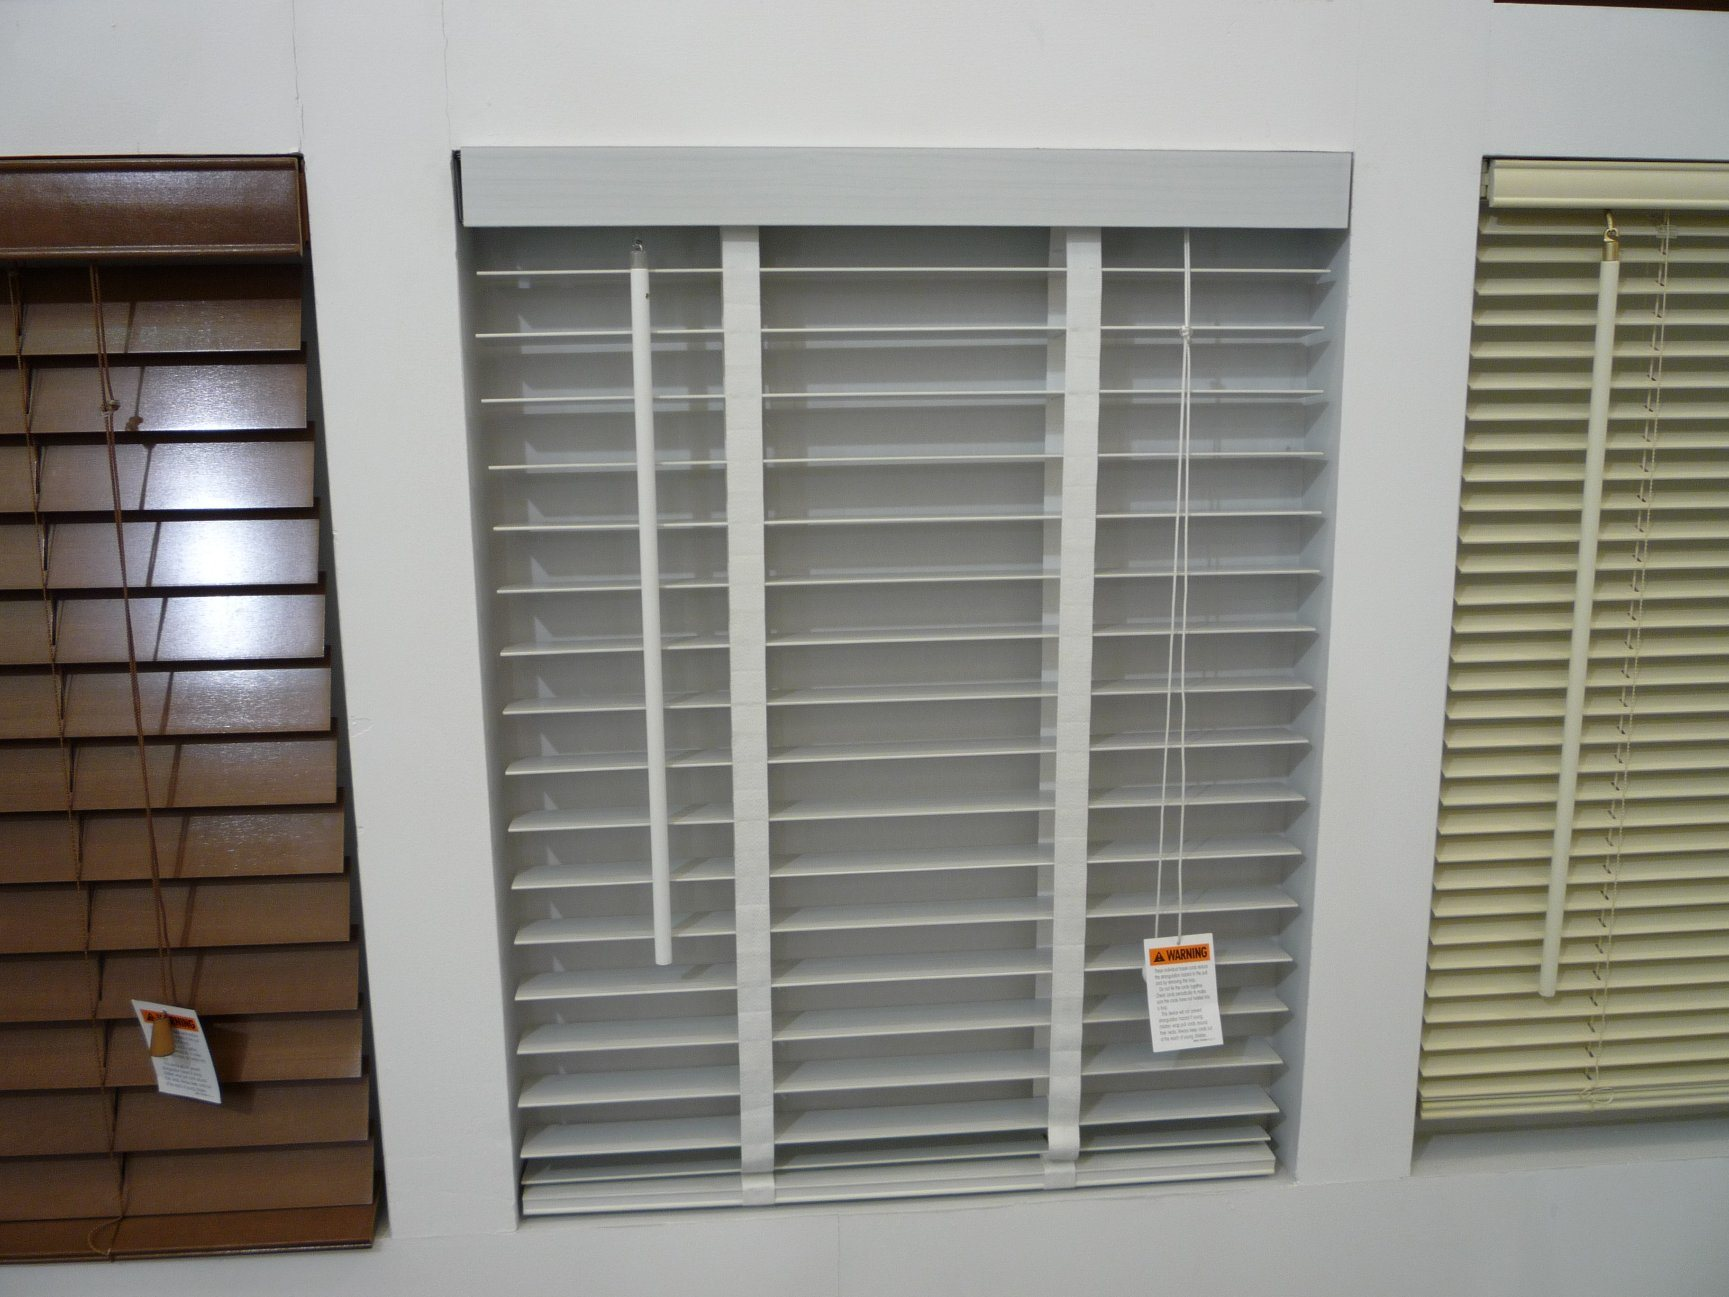 50mm Wooden Venetian Blinds for Window Decor with Manual Control